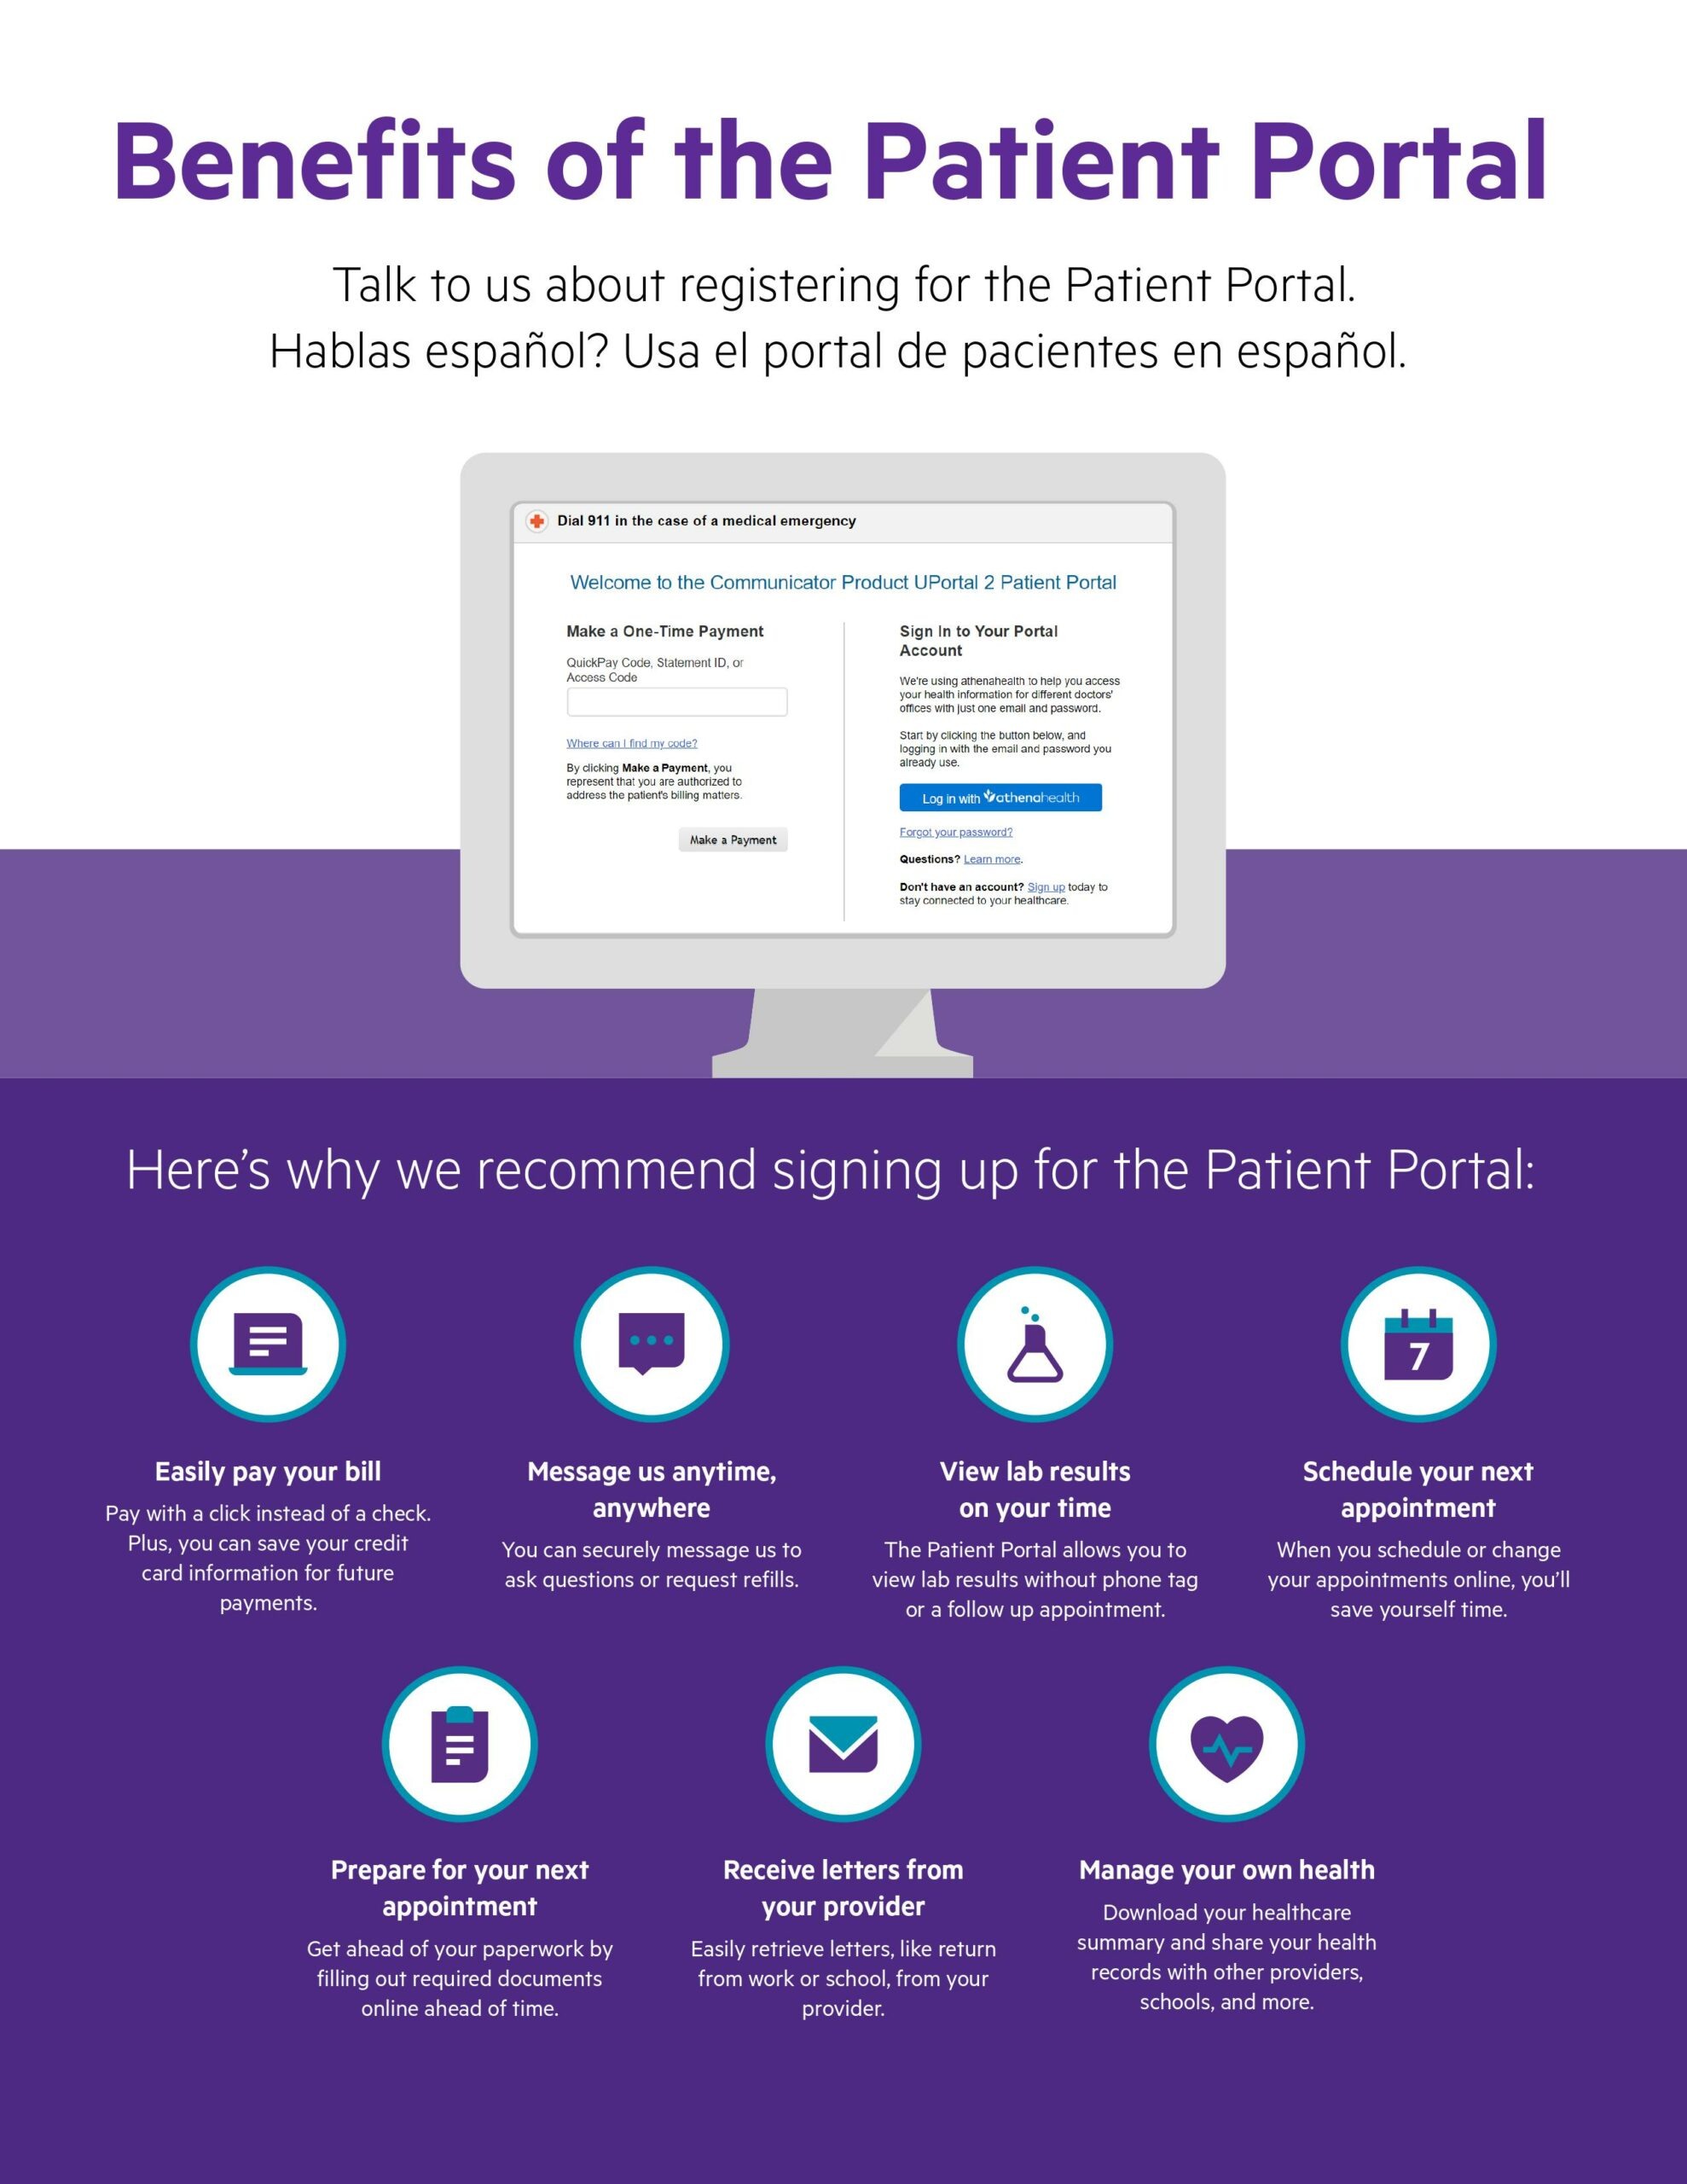 Benefits of the Patient Portal English